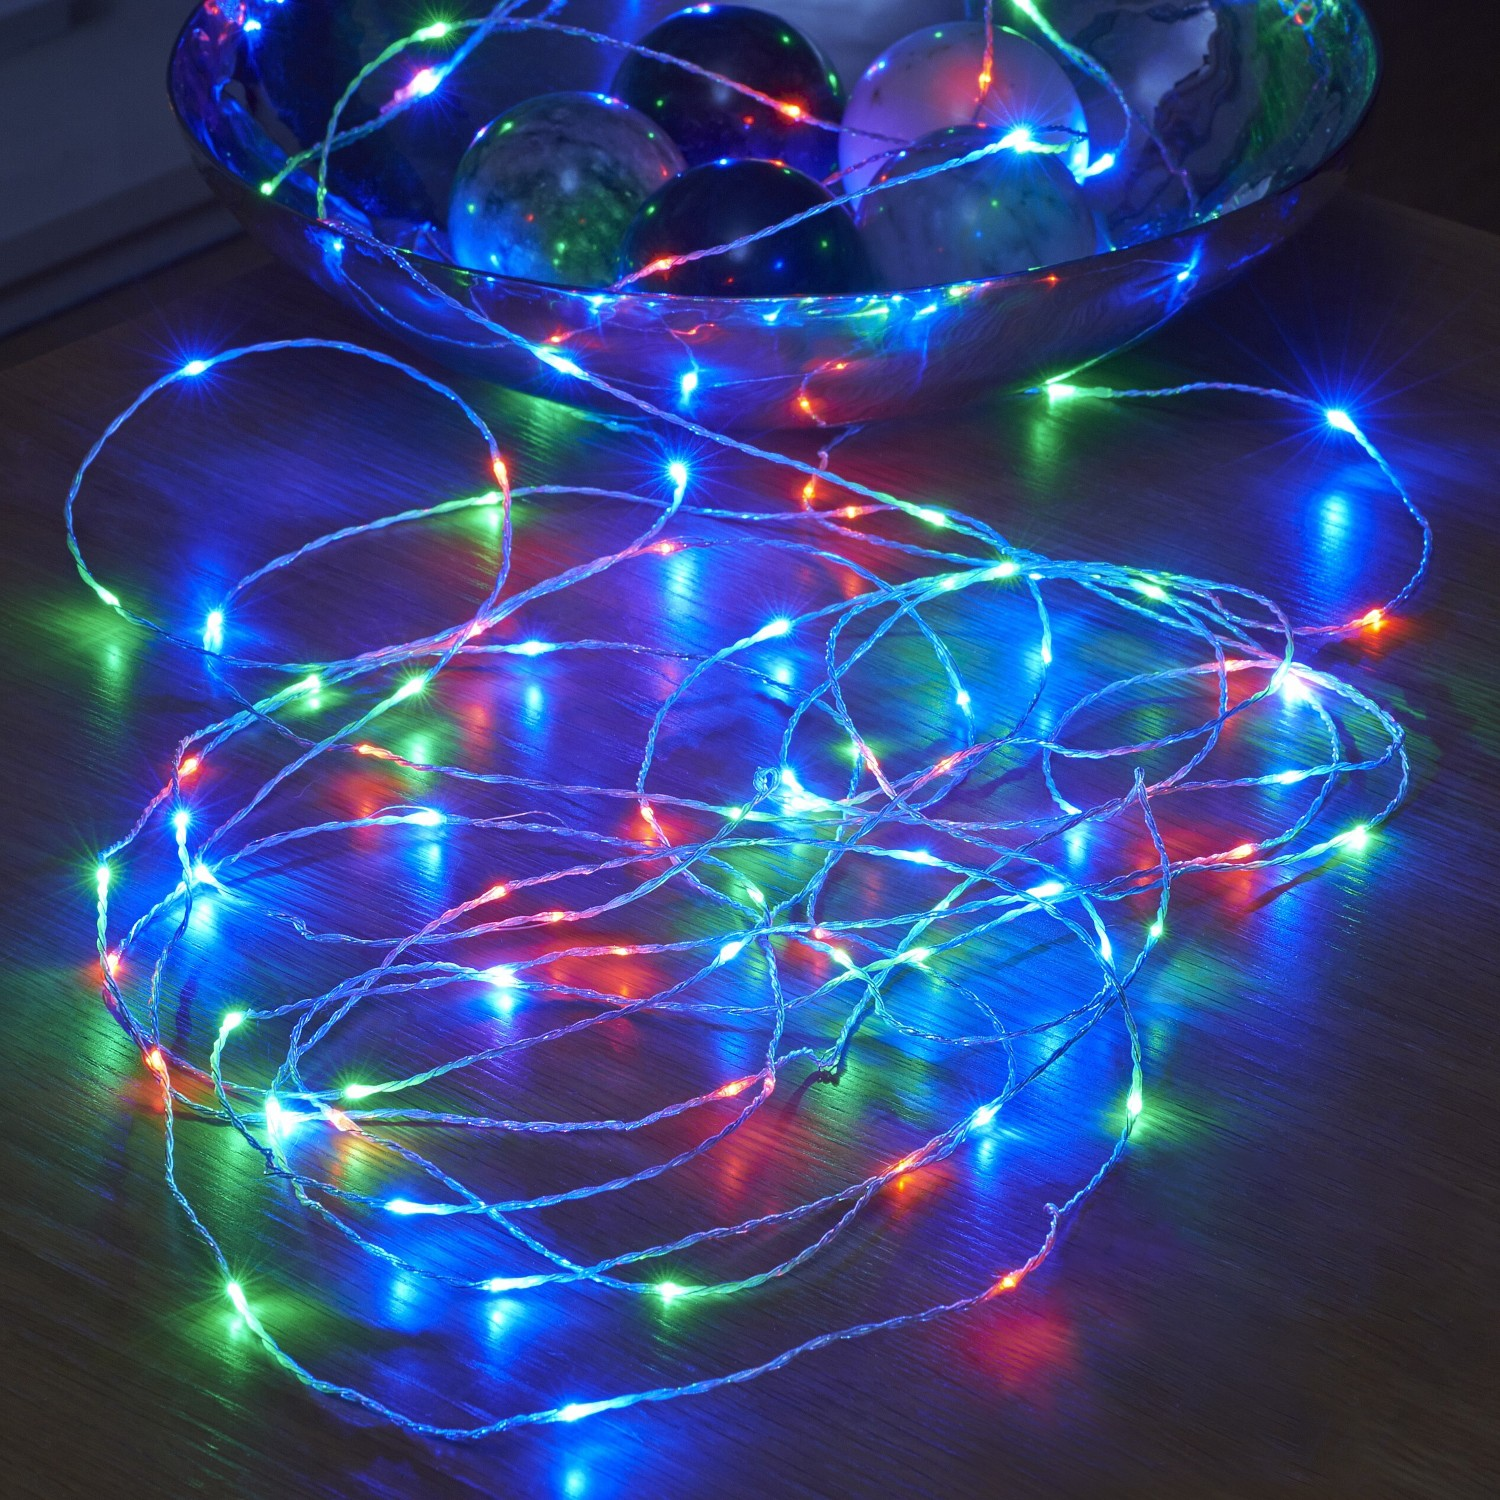 Micro led string lights battery operated remote controlled micro led string lights battery operated remote controlled outdoor rgb 5m mozeypictures Image collections